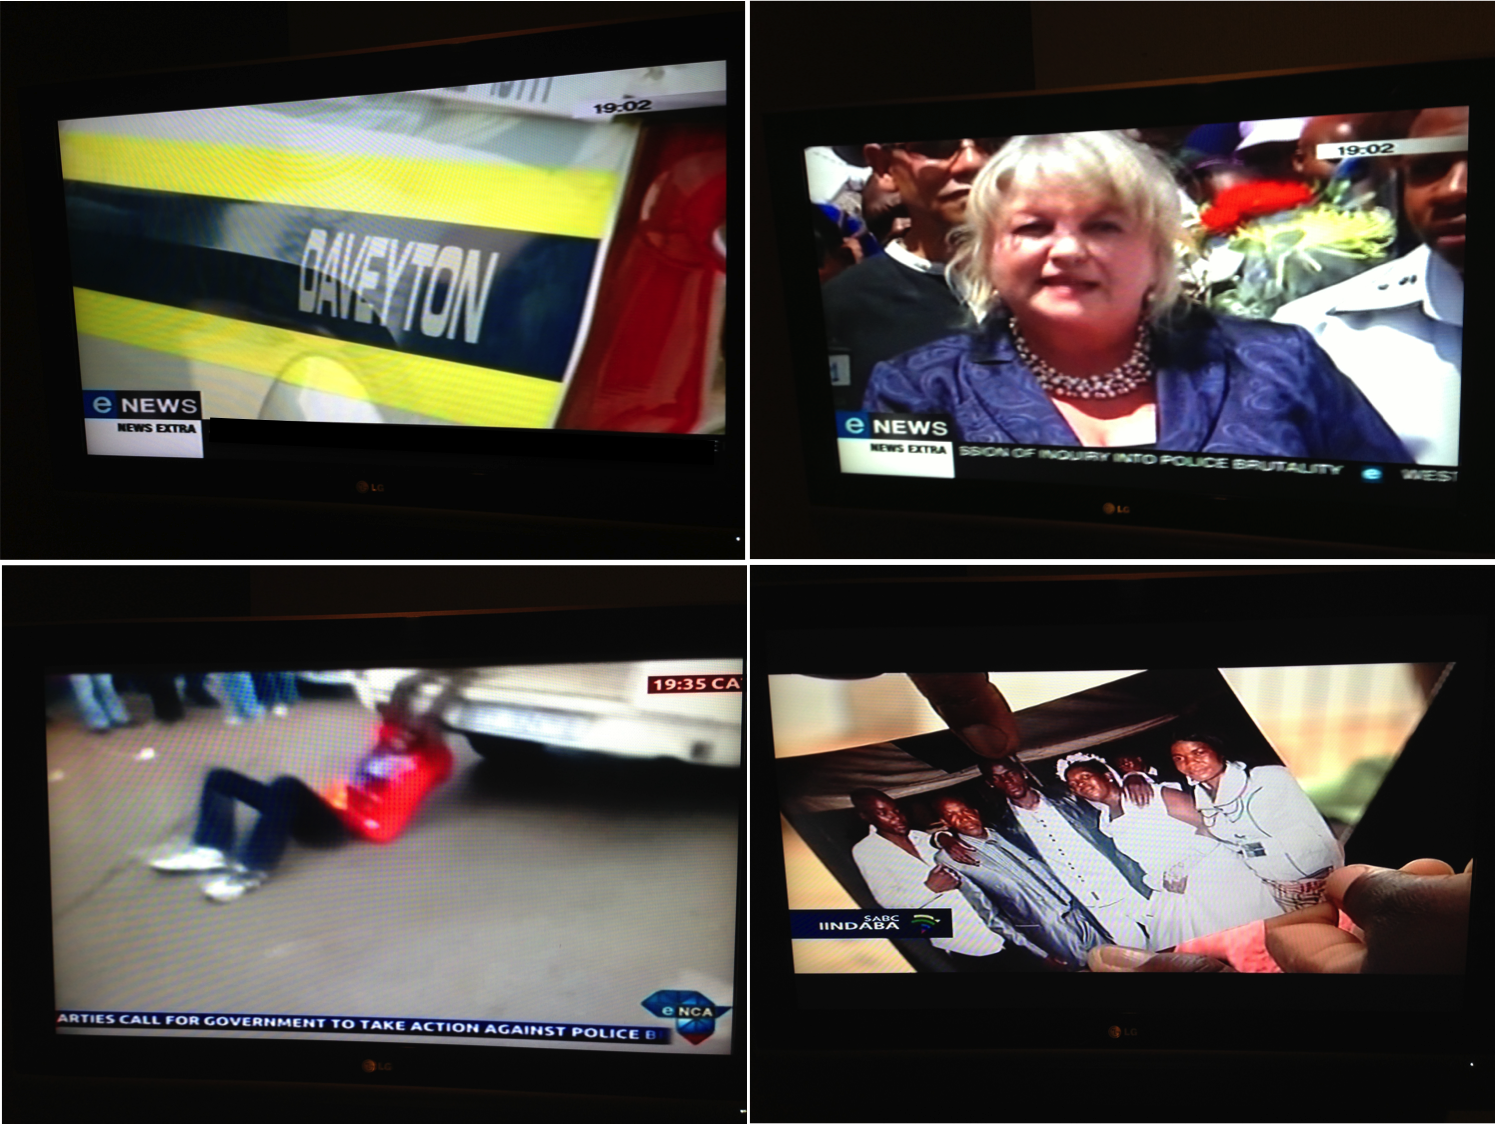 """<img src=http://""""Daveyton_Police_Brutality.png""""?w=388&h=291 alt=""""Daveyton Police Brutality"""">"""